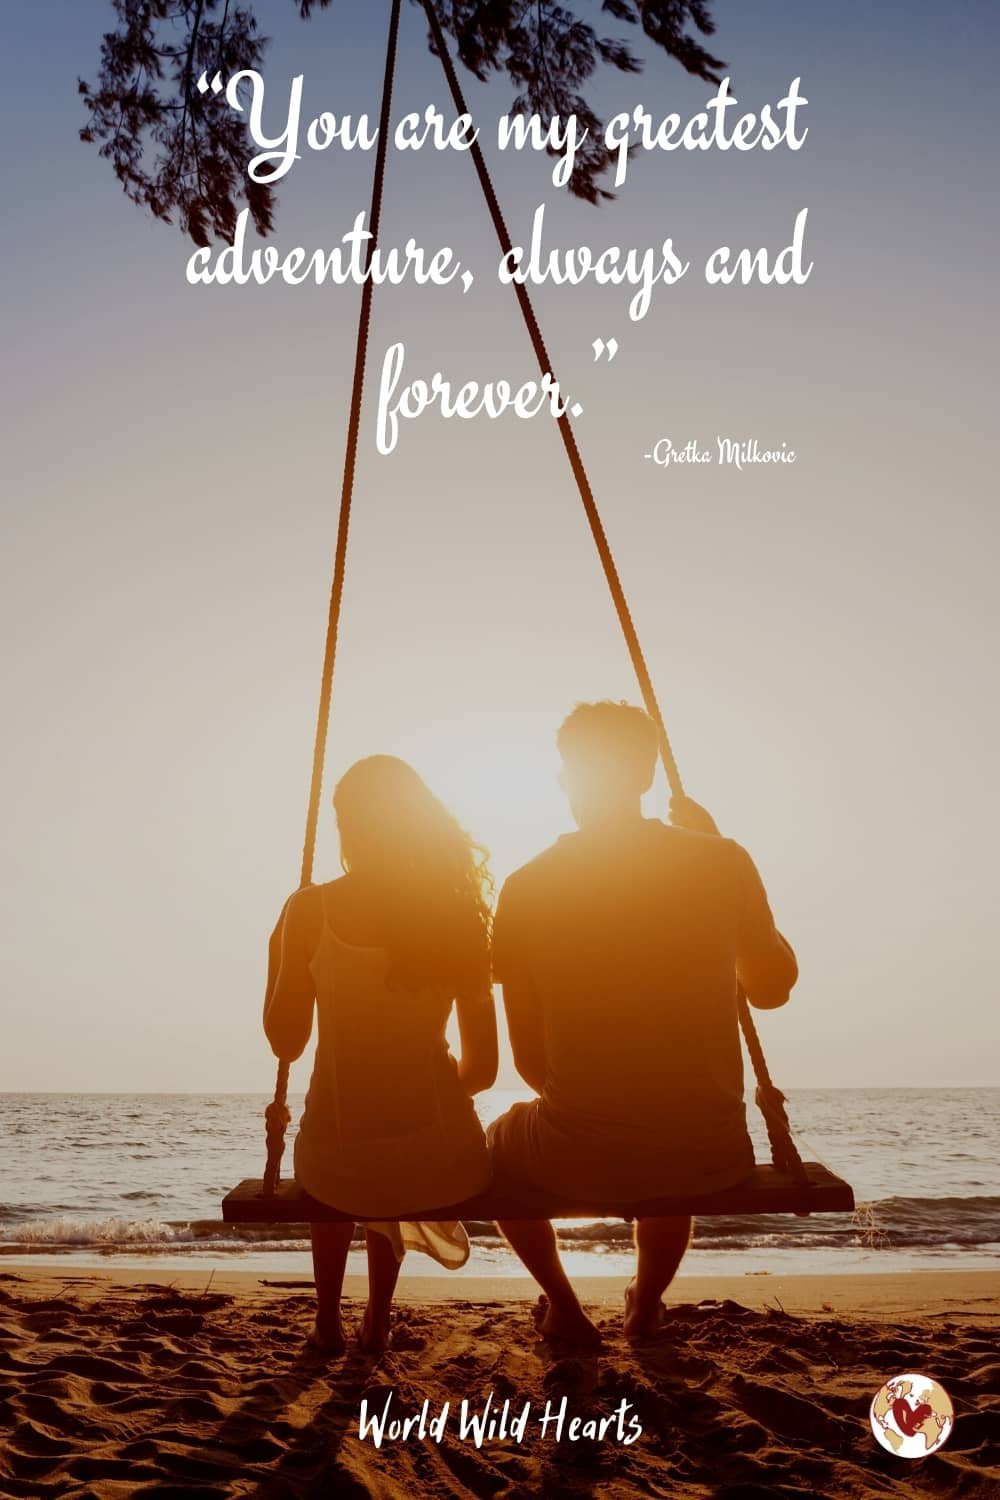 Top couples travel quote for partners